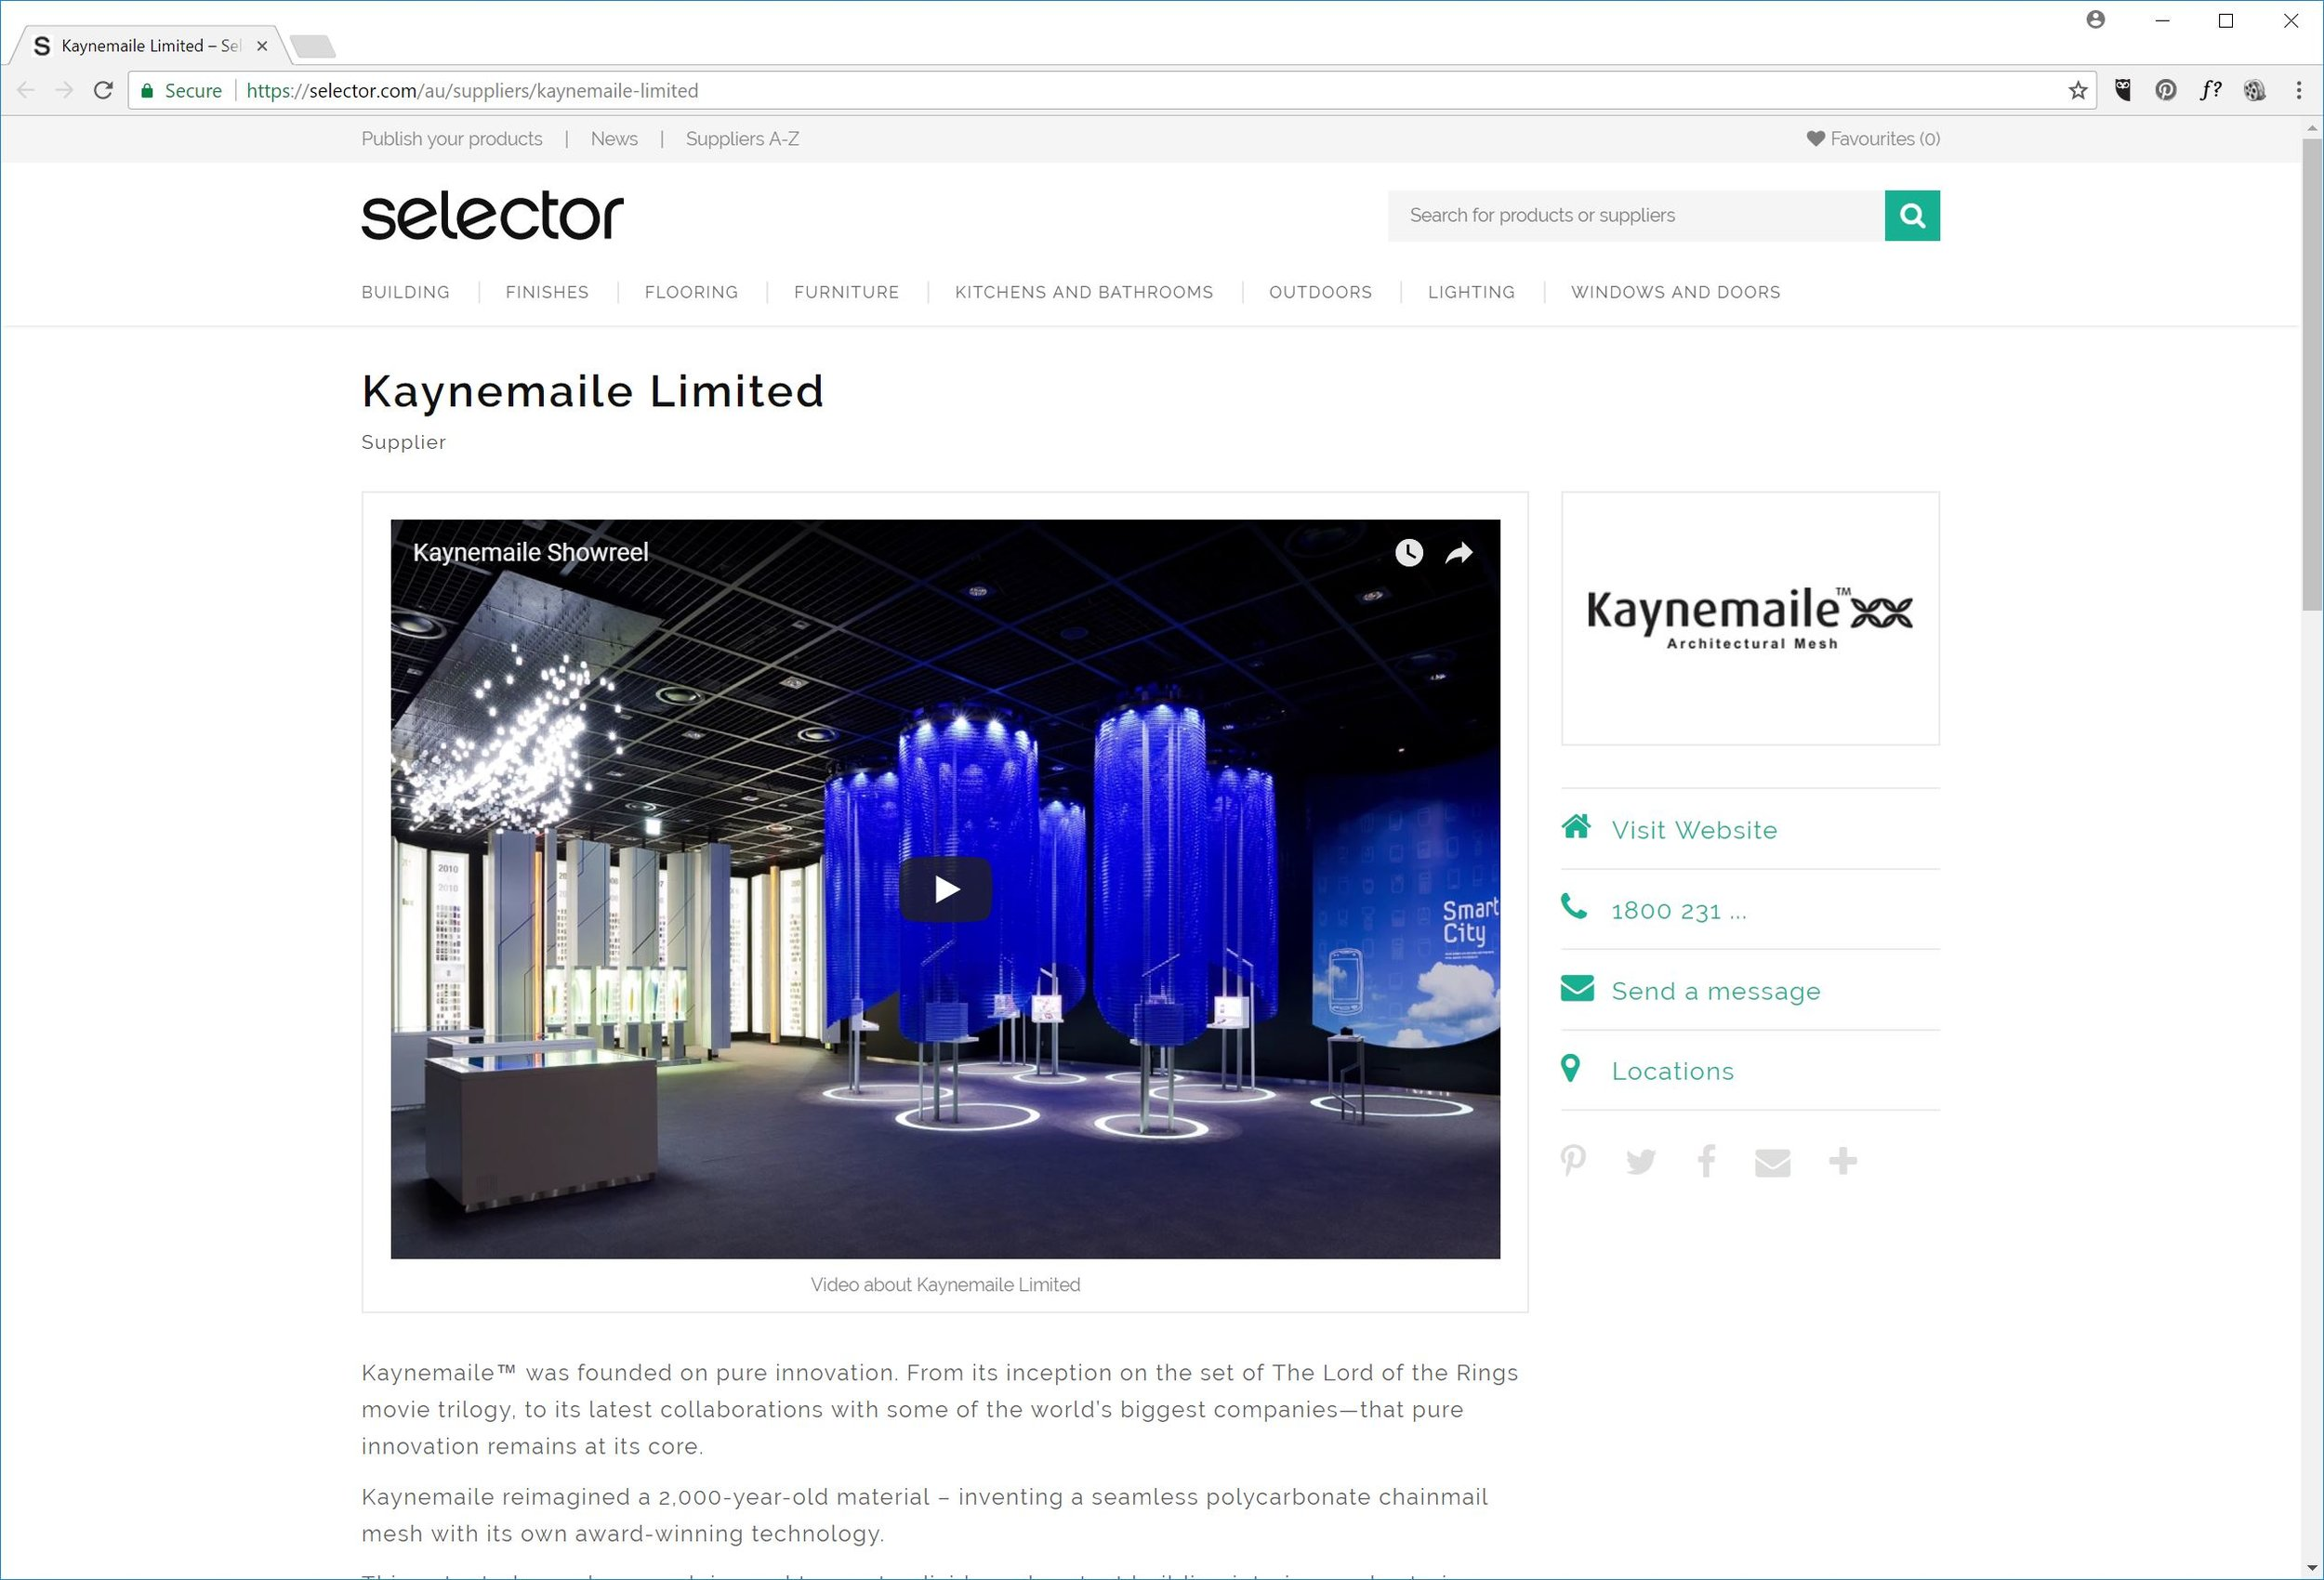 Kaynemaile feature on Selector product library